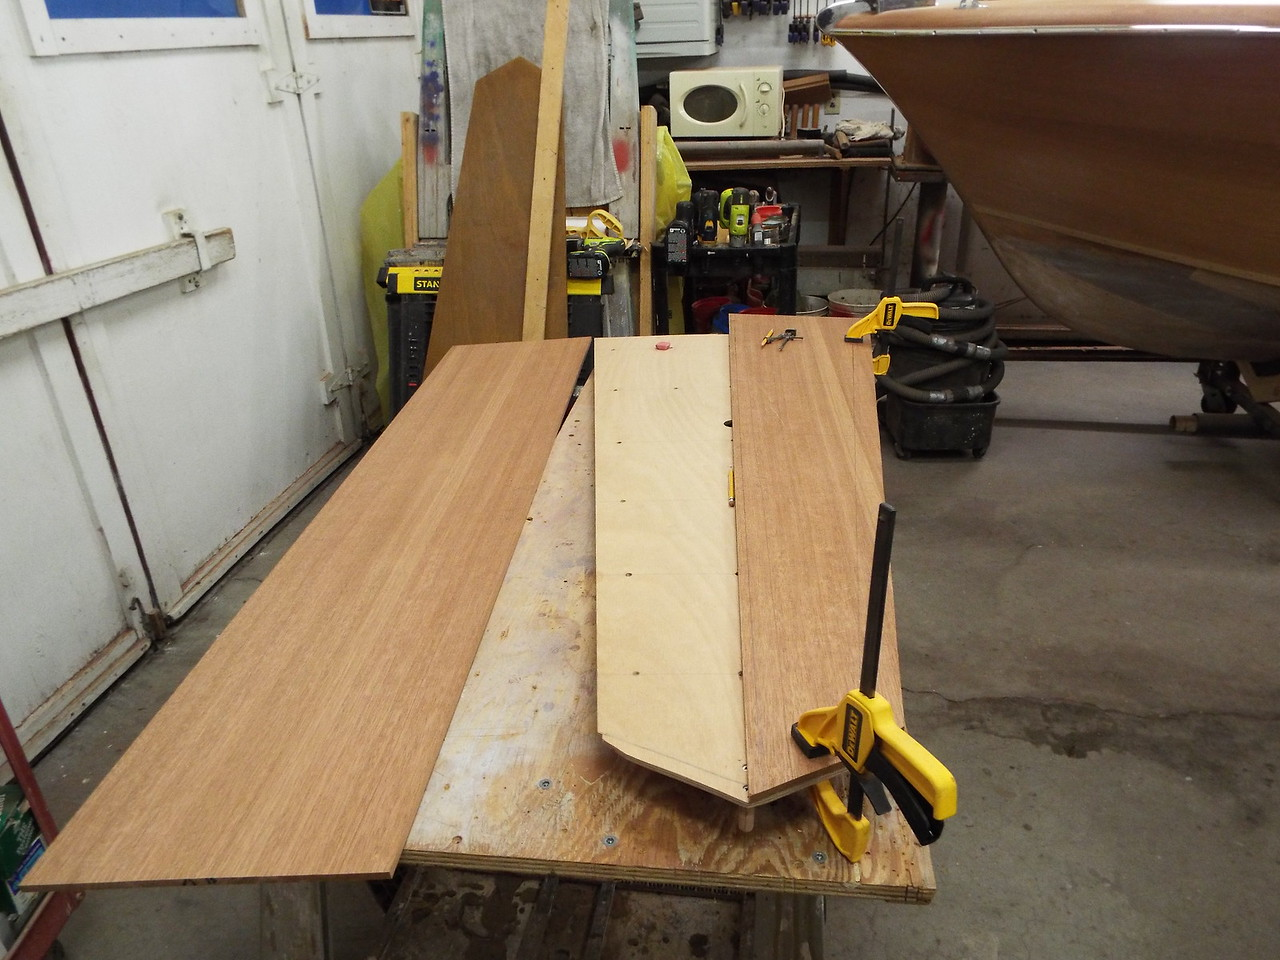 Fitting the mahogany skin to the front deck vent.